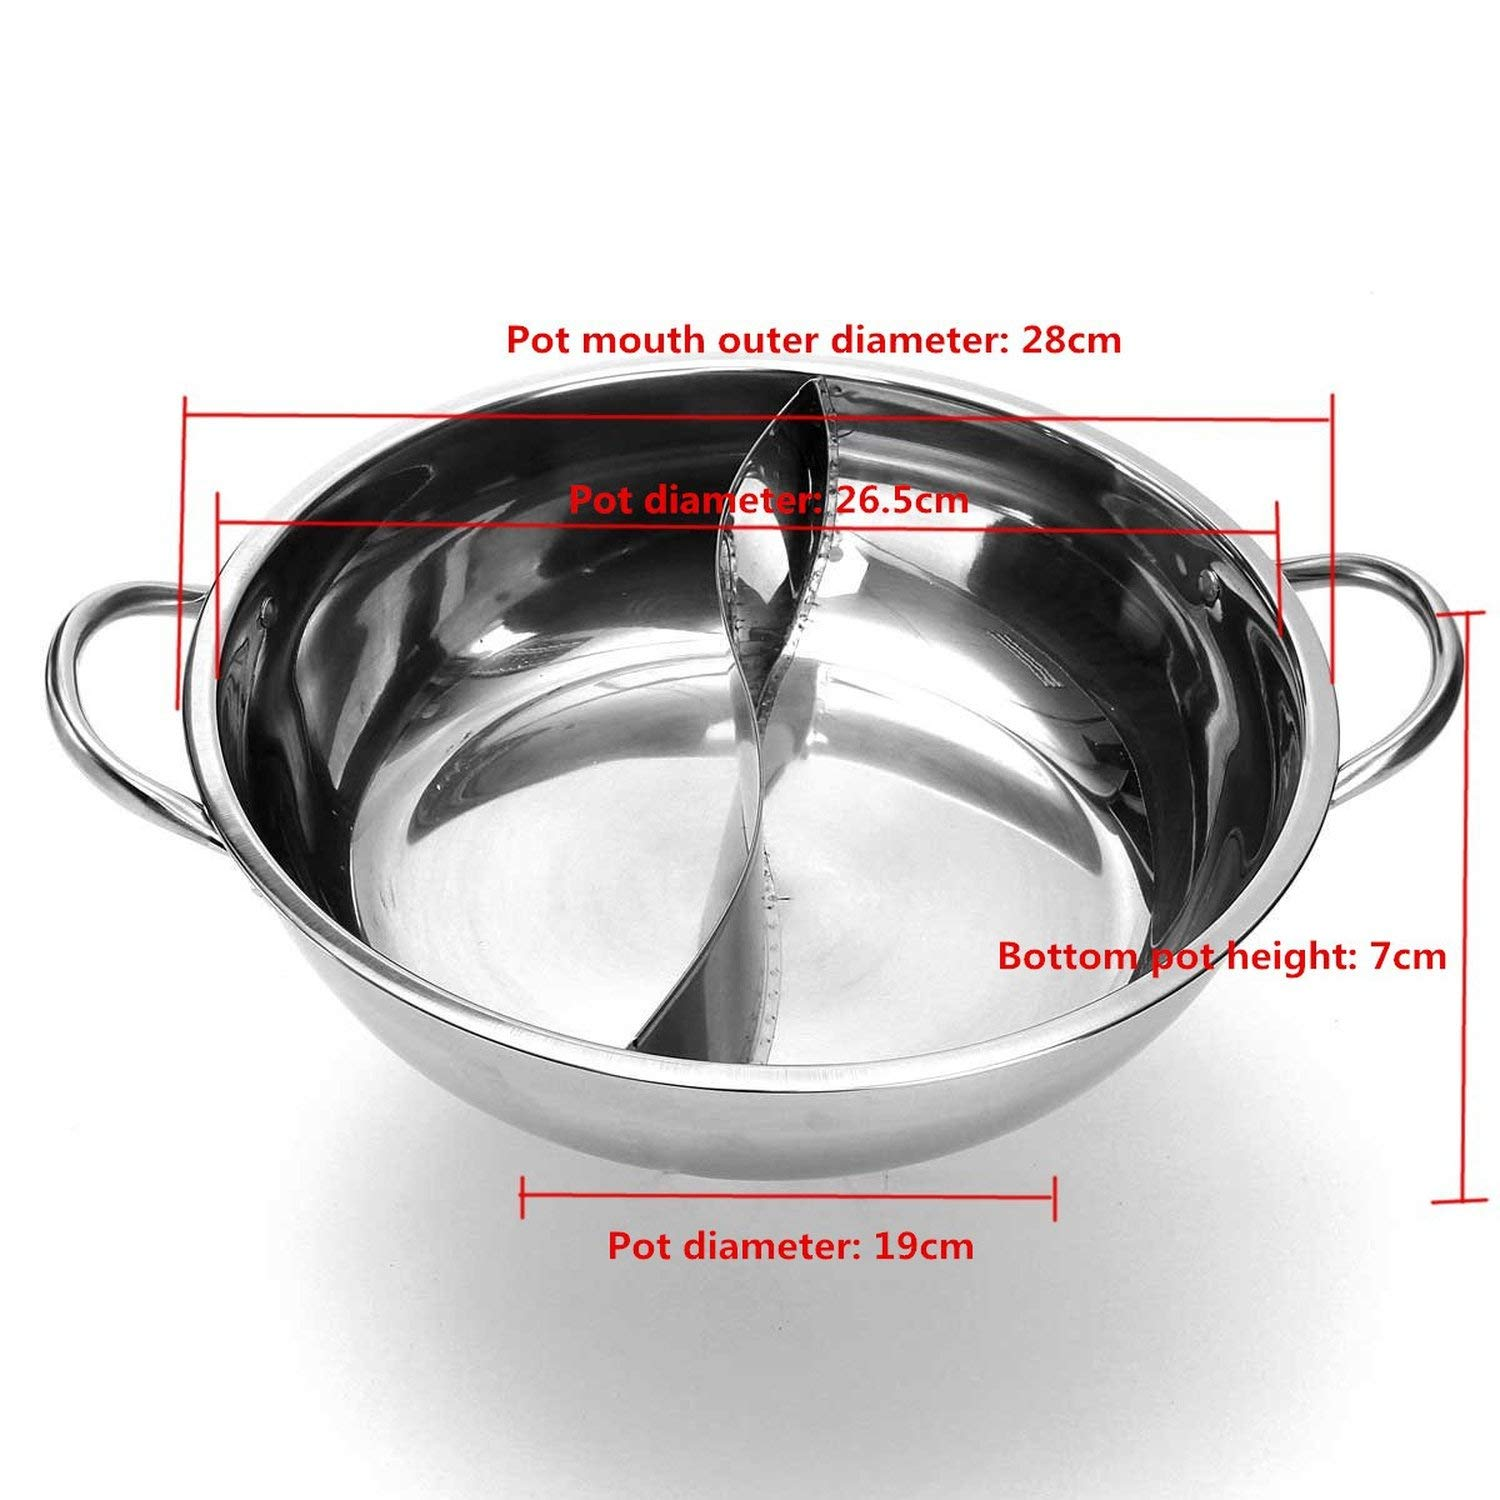 Hot Pot Twin Divided Stainless Steel 28cm Cookware Induction Little Sheep Pot Hot Pot Ruled Compatible Soup Stock Pots